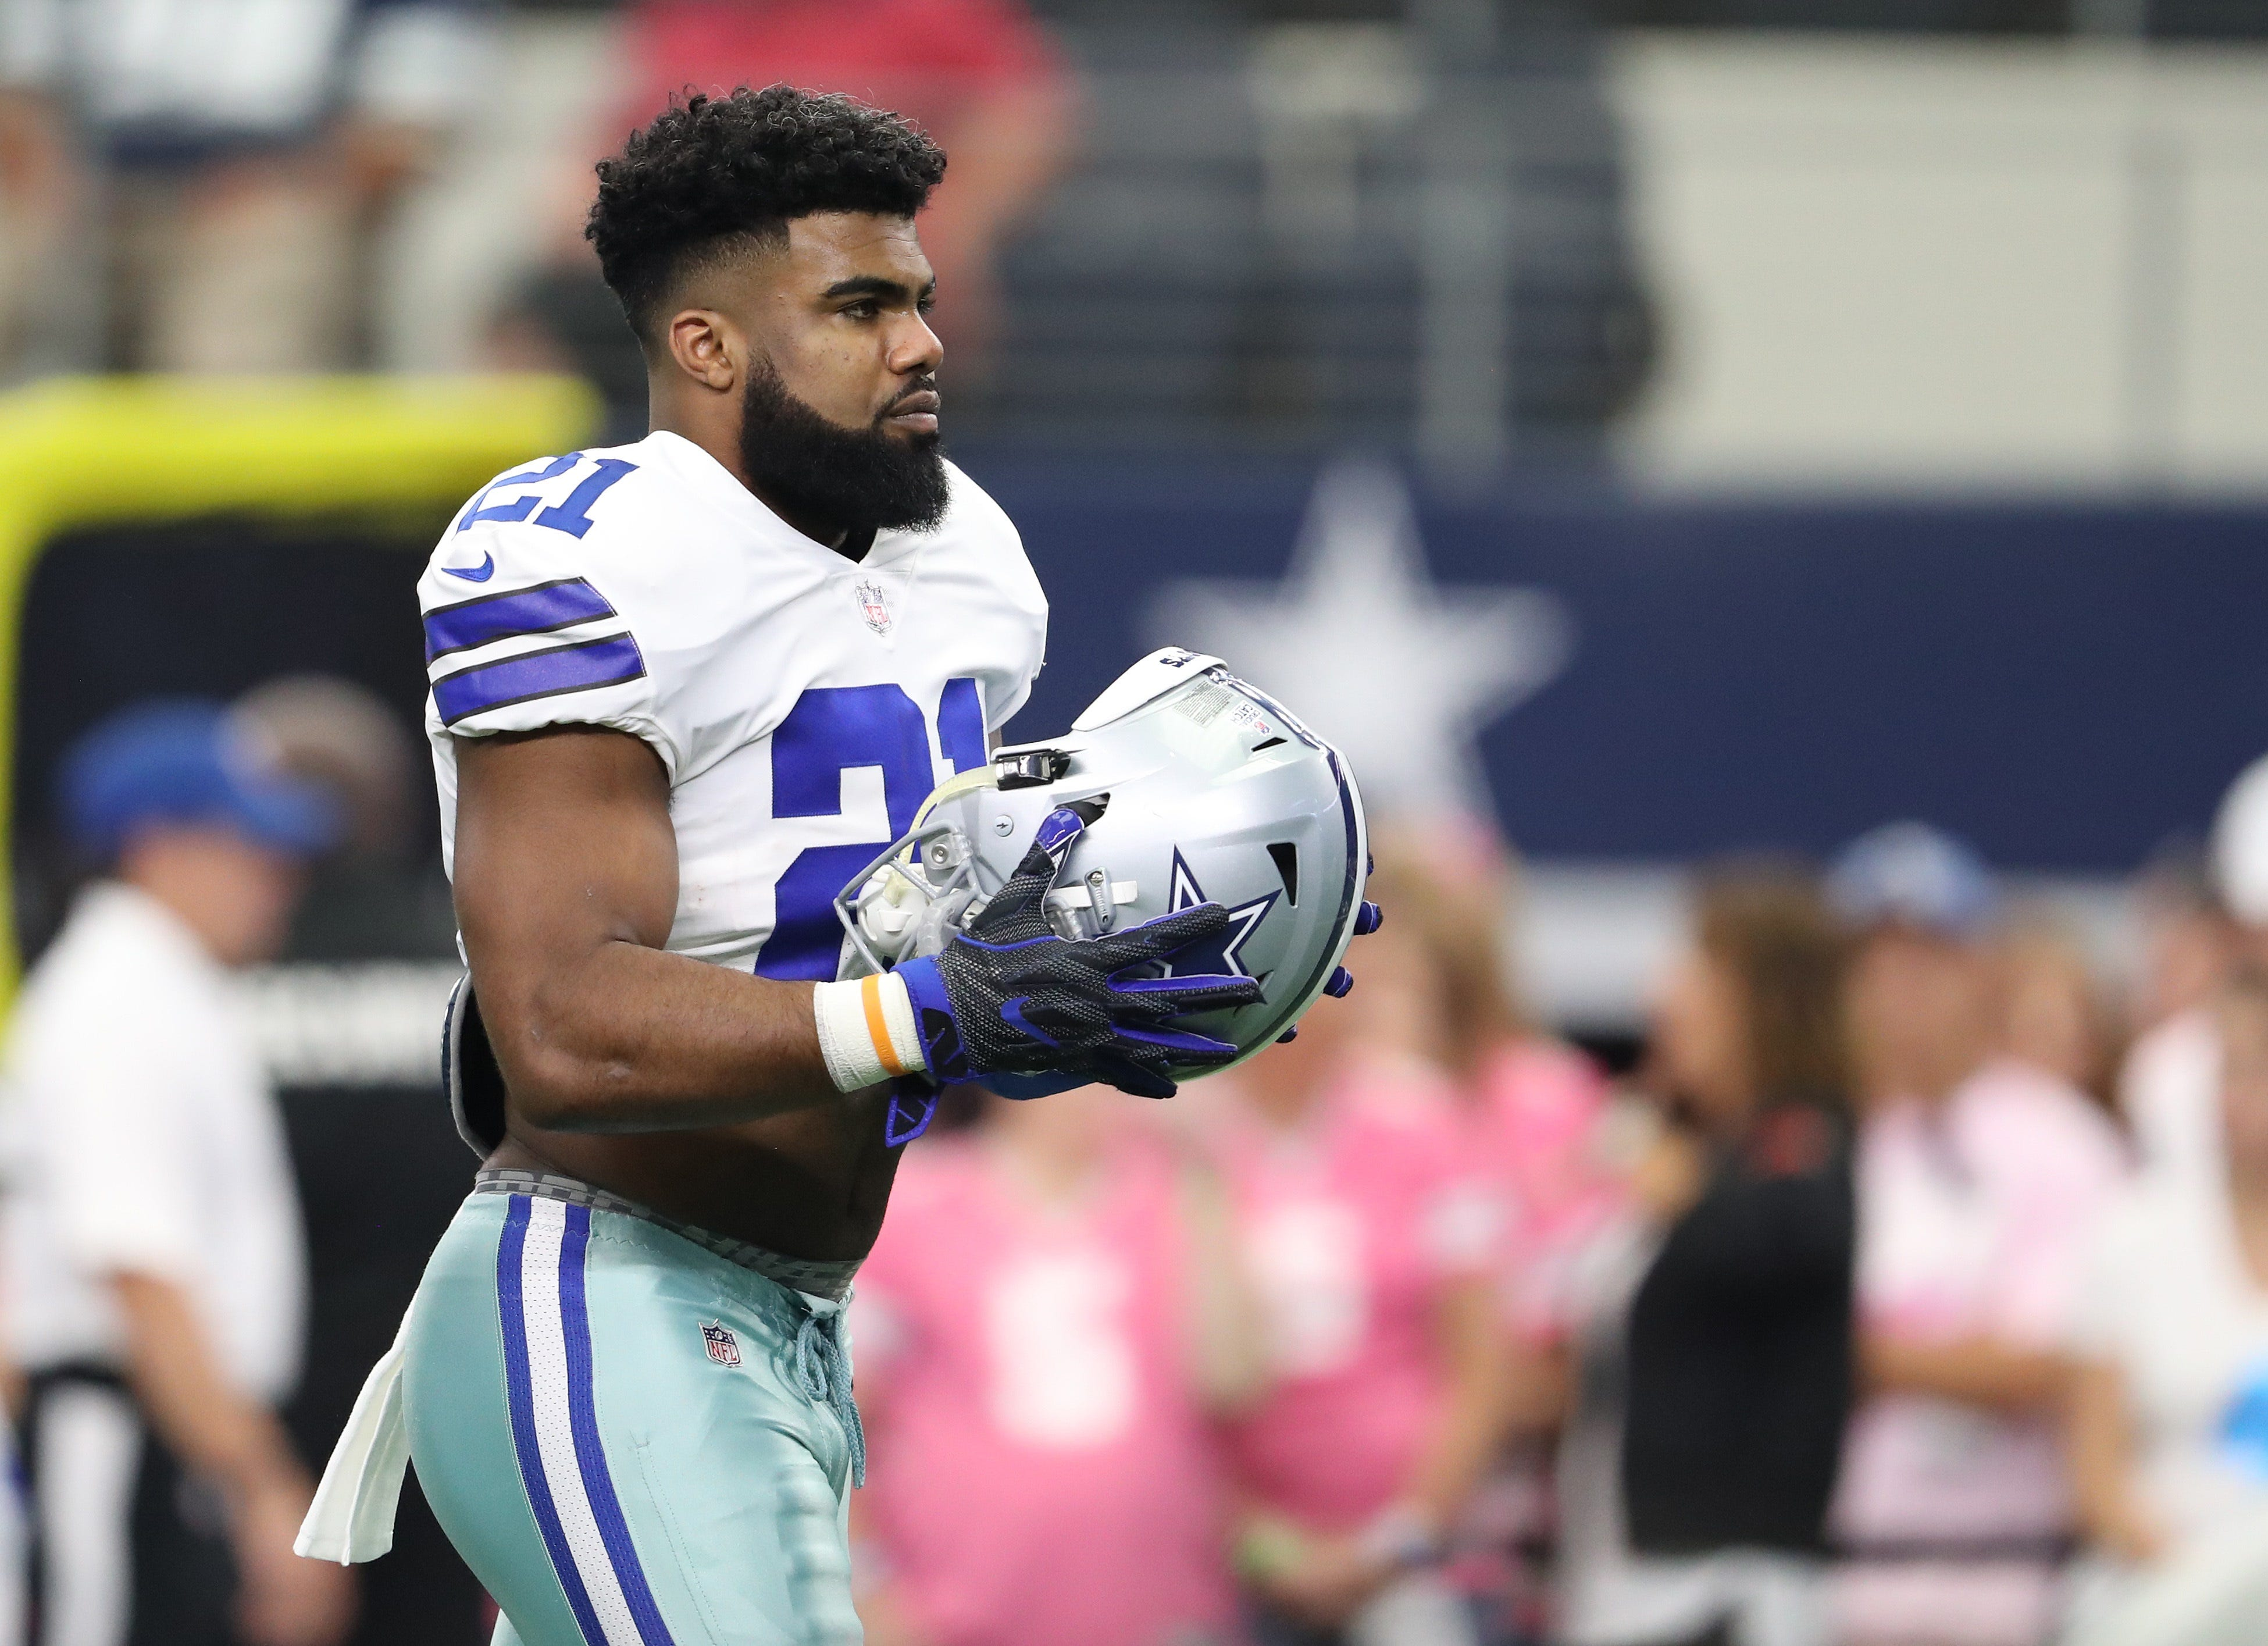 Appeals court grants stay to Cowboys' Ezekiel Elliott, who can play vs. Chiefs